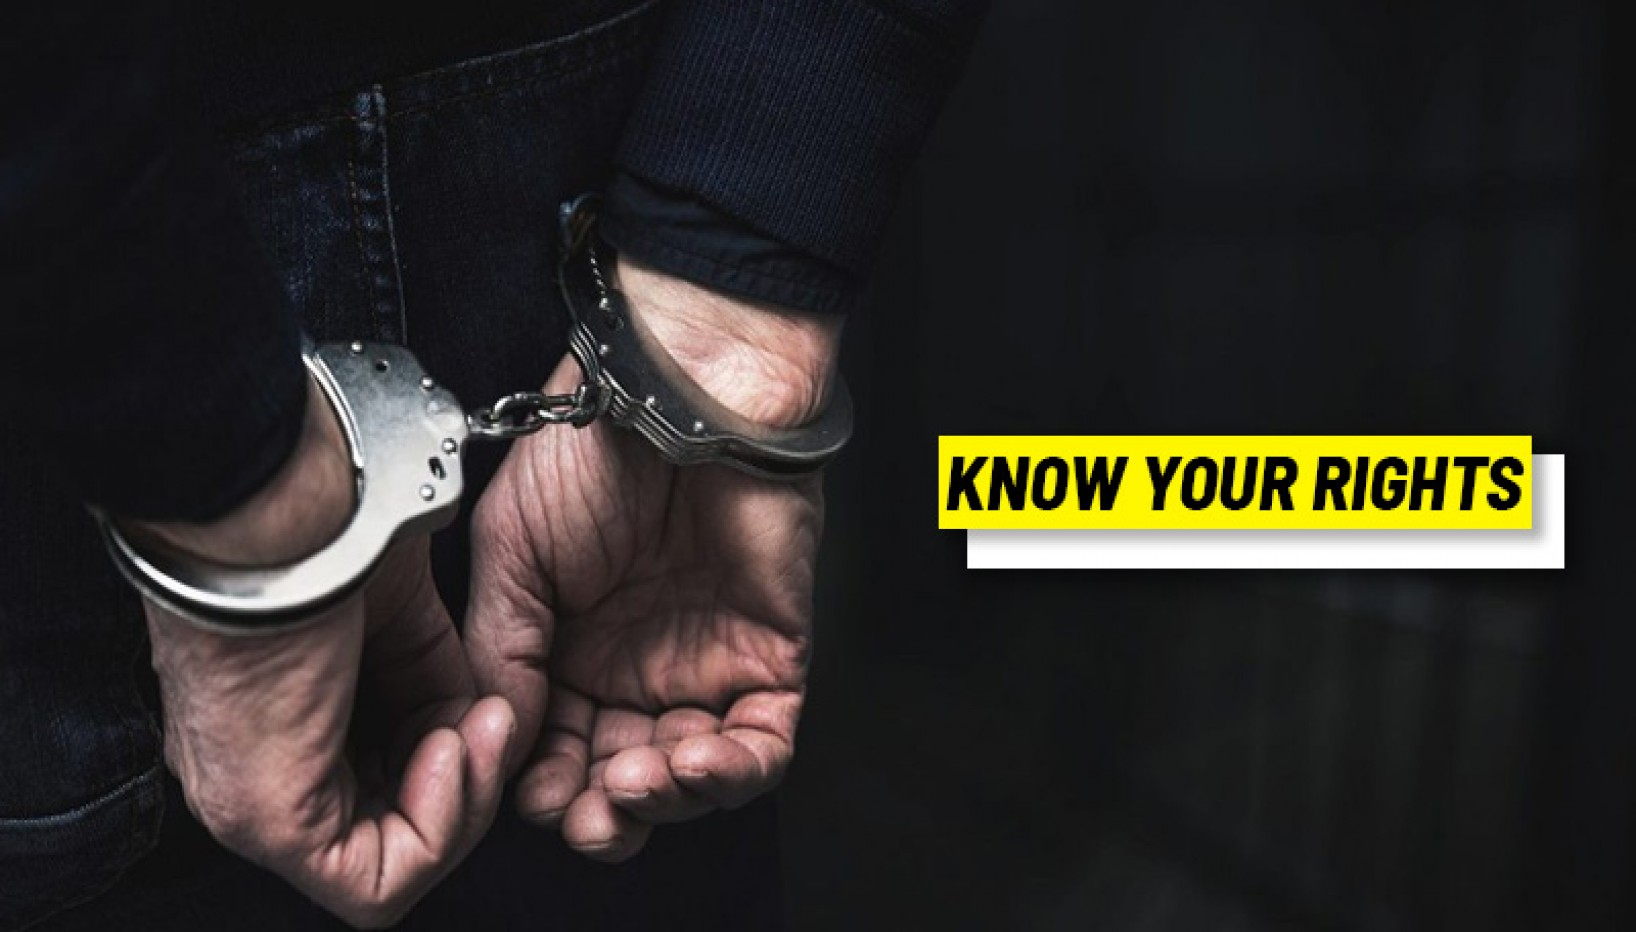 Know Your Rights: Every Nepali Citizen Has These Basic Rights Upon Getting Arrested Or Detained